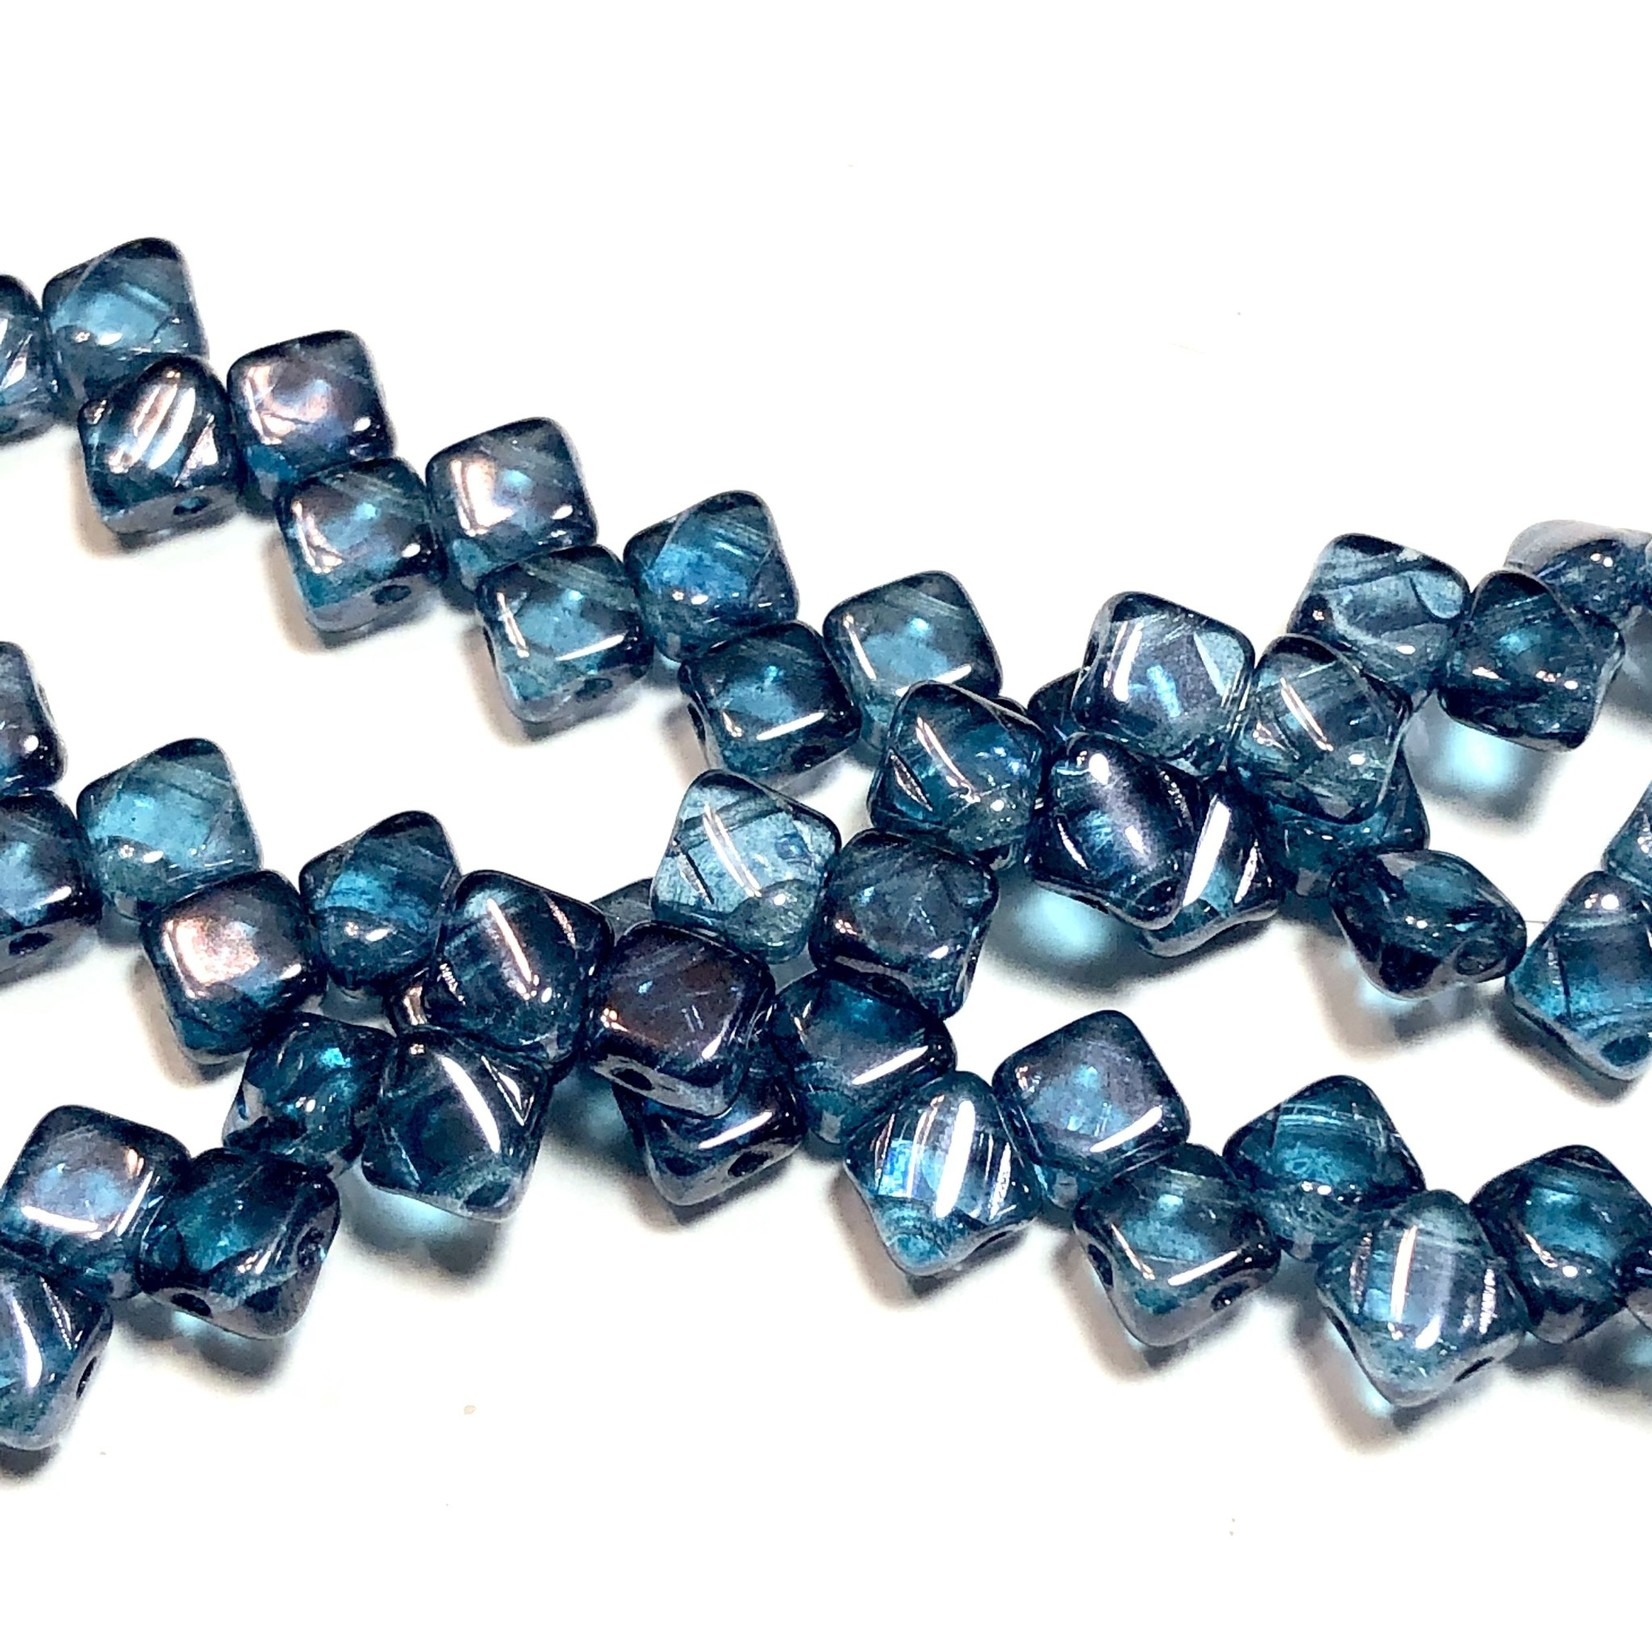 2-Hole SILKY Bead Alex Blue Luster 40pcs 6.5mm